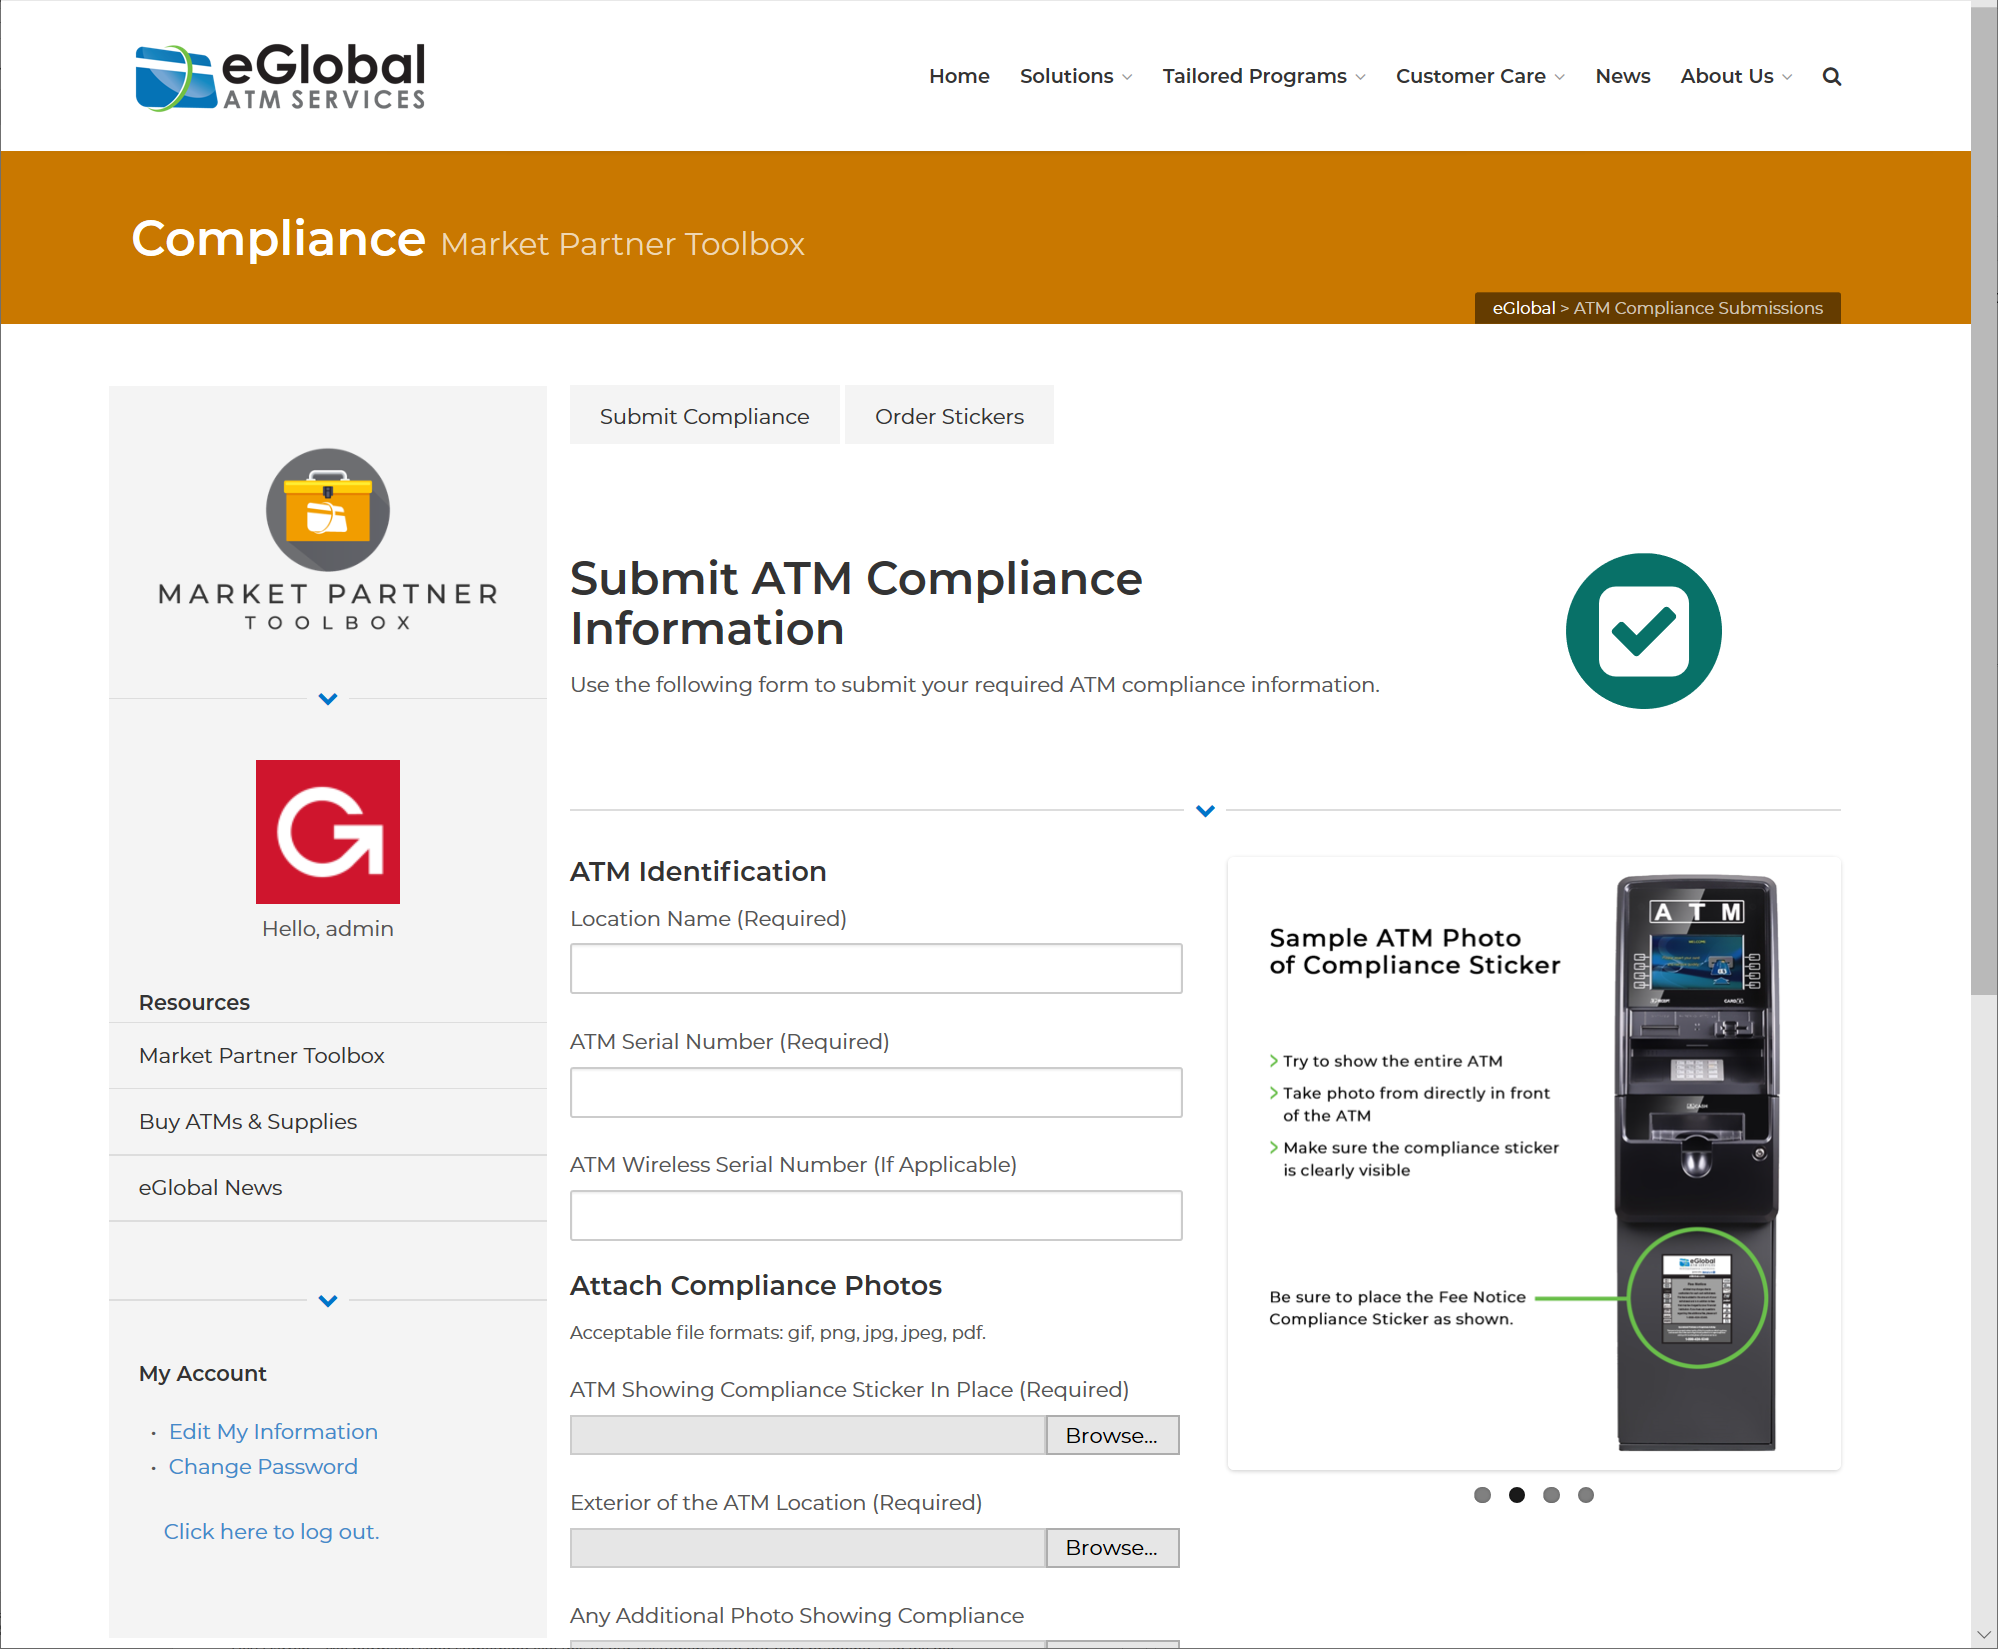 ATM Business Owner Services & Market Partner Toolbox Compliance Submissions